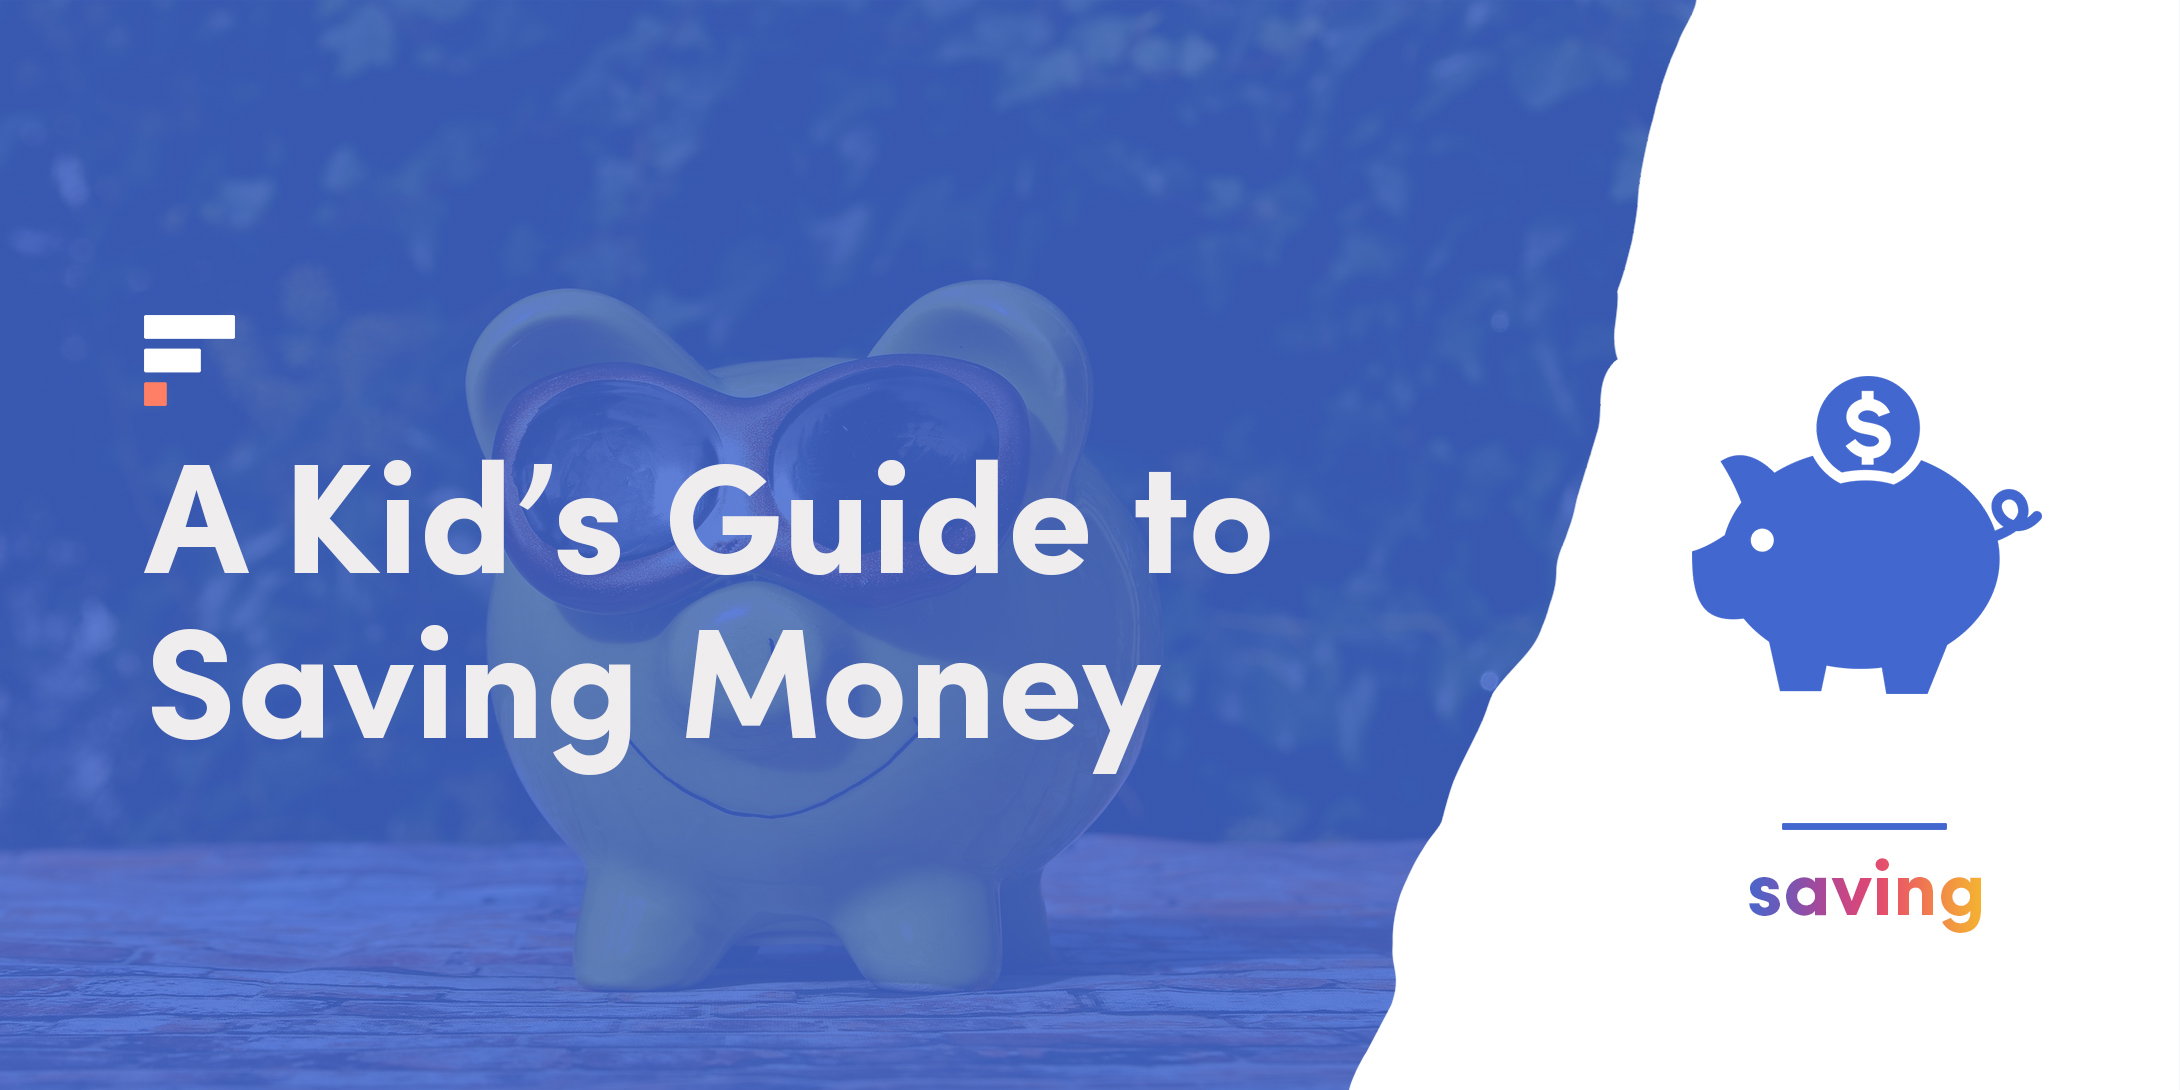 Kids guide to saving money